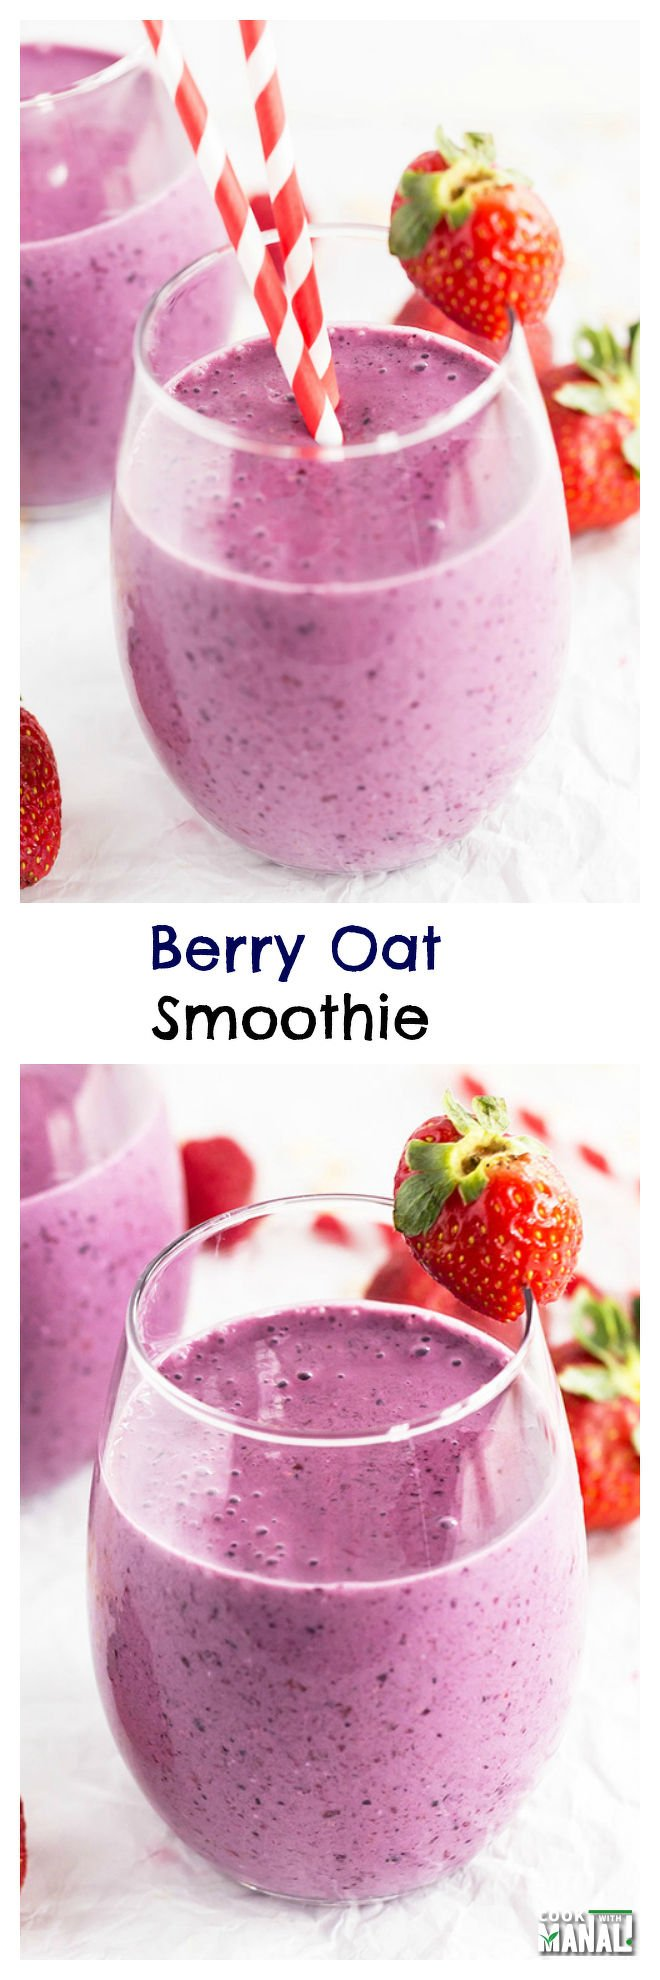 Berry Oat Smoothie Collage